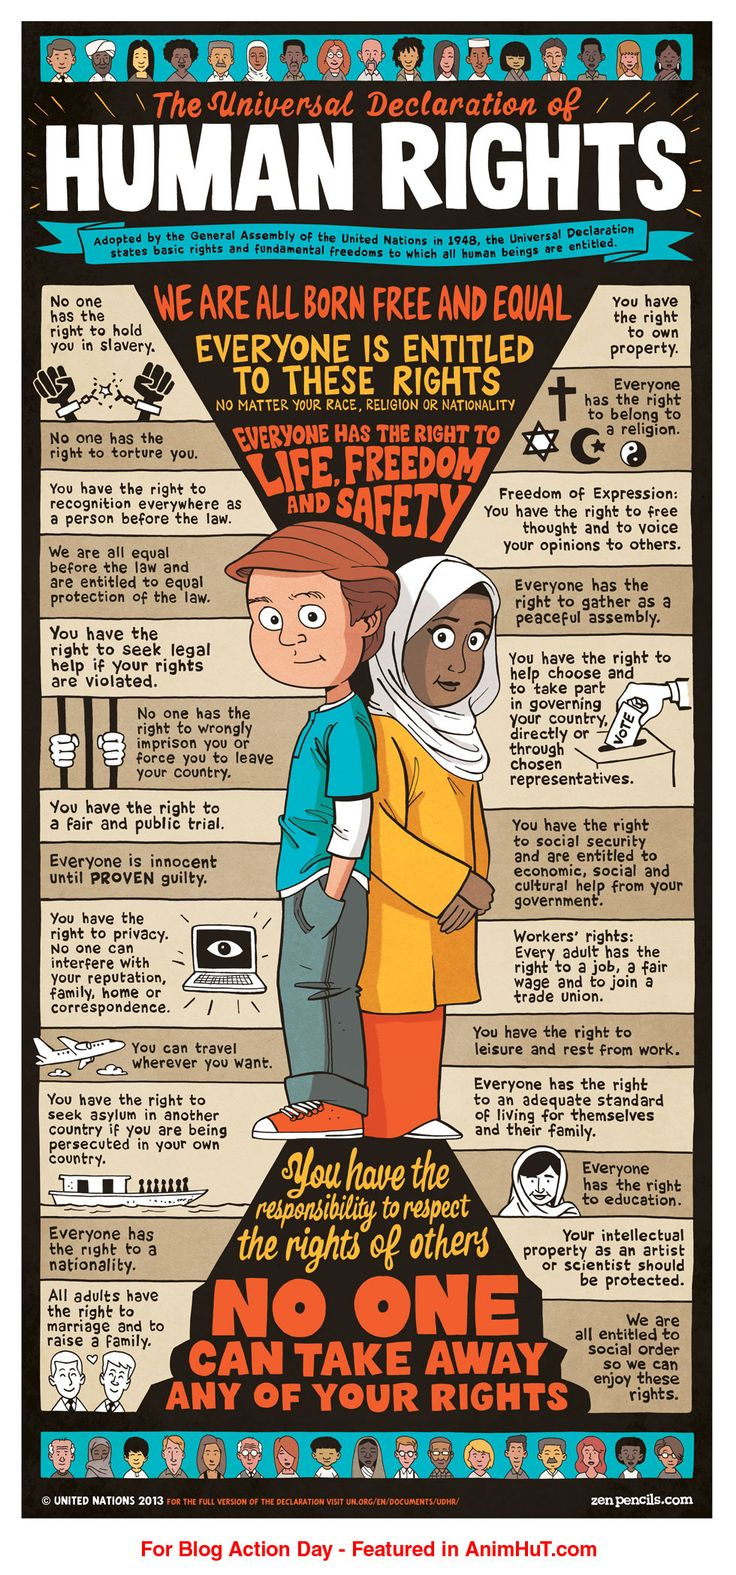 #HumanRights and  Civil Rights #poster design